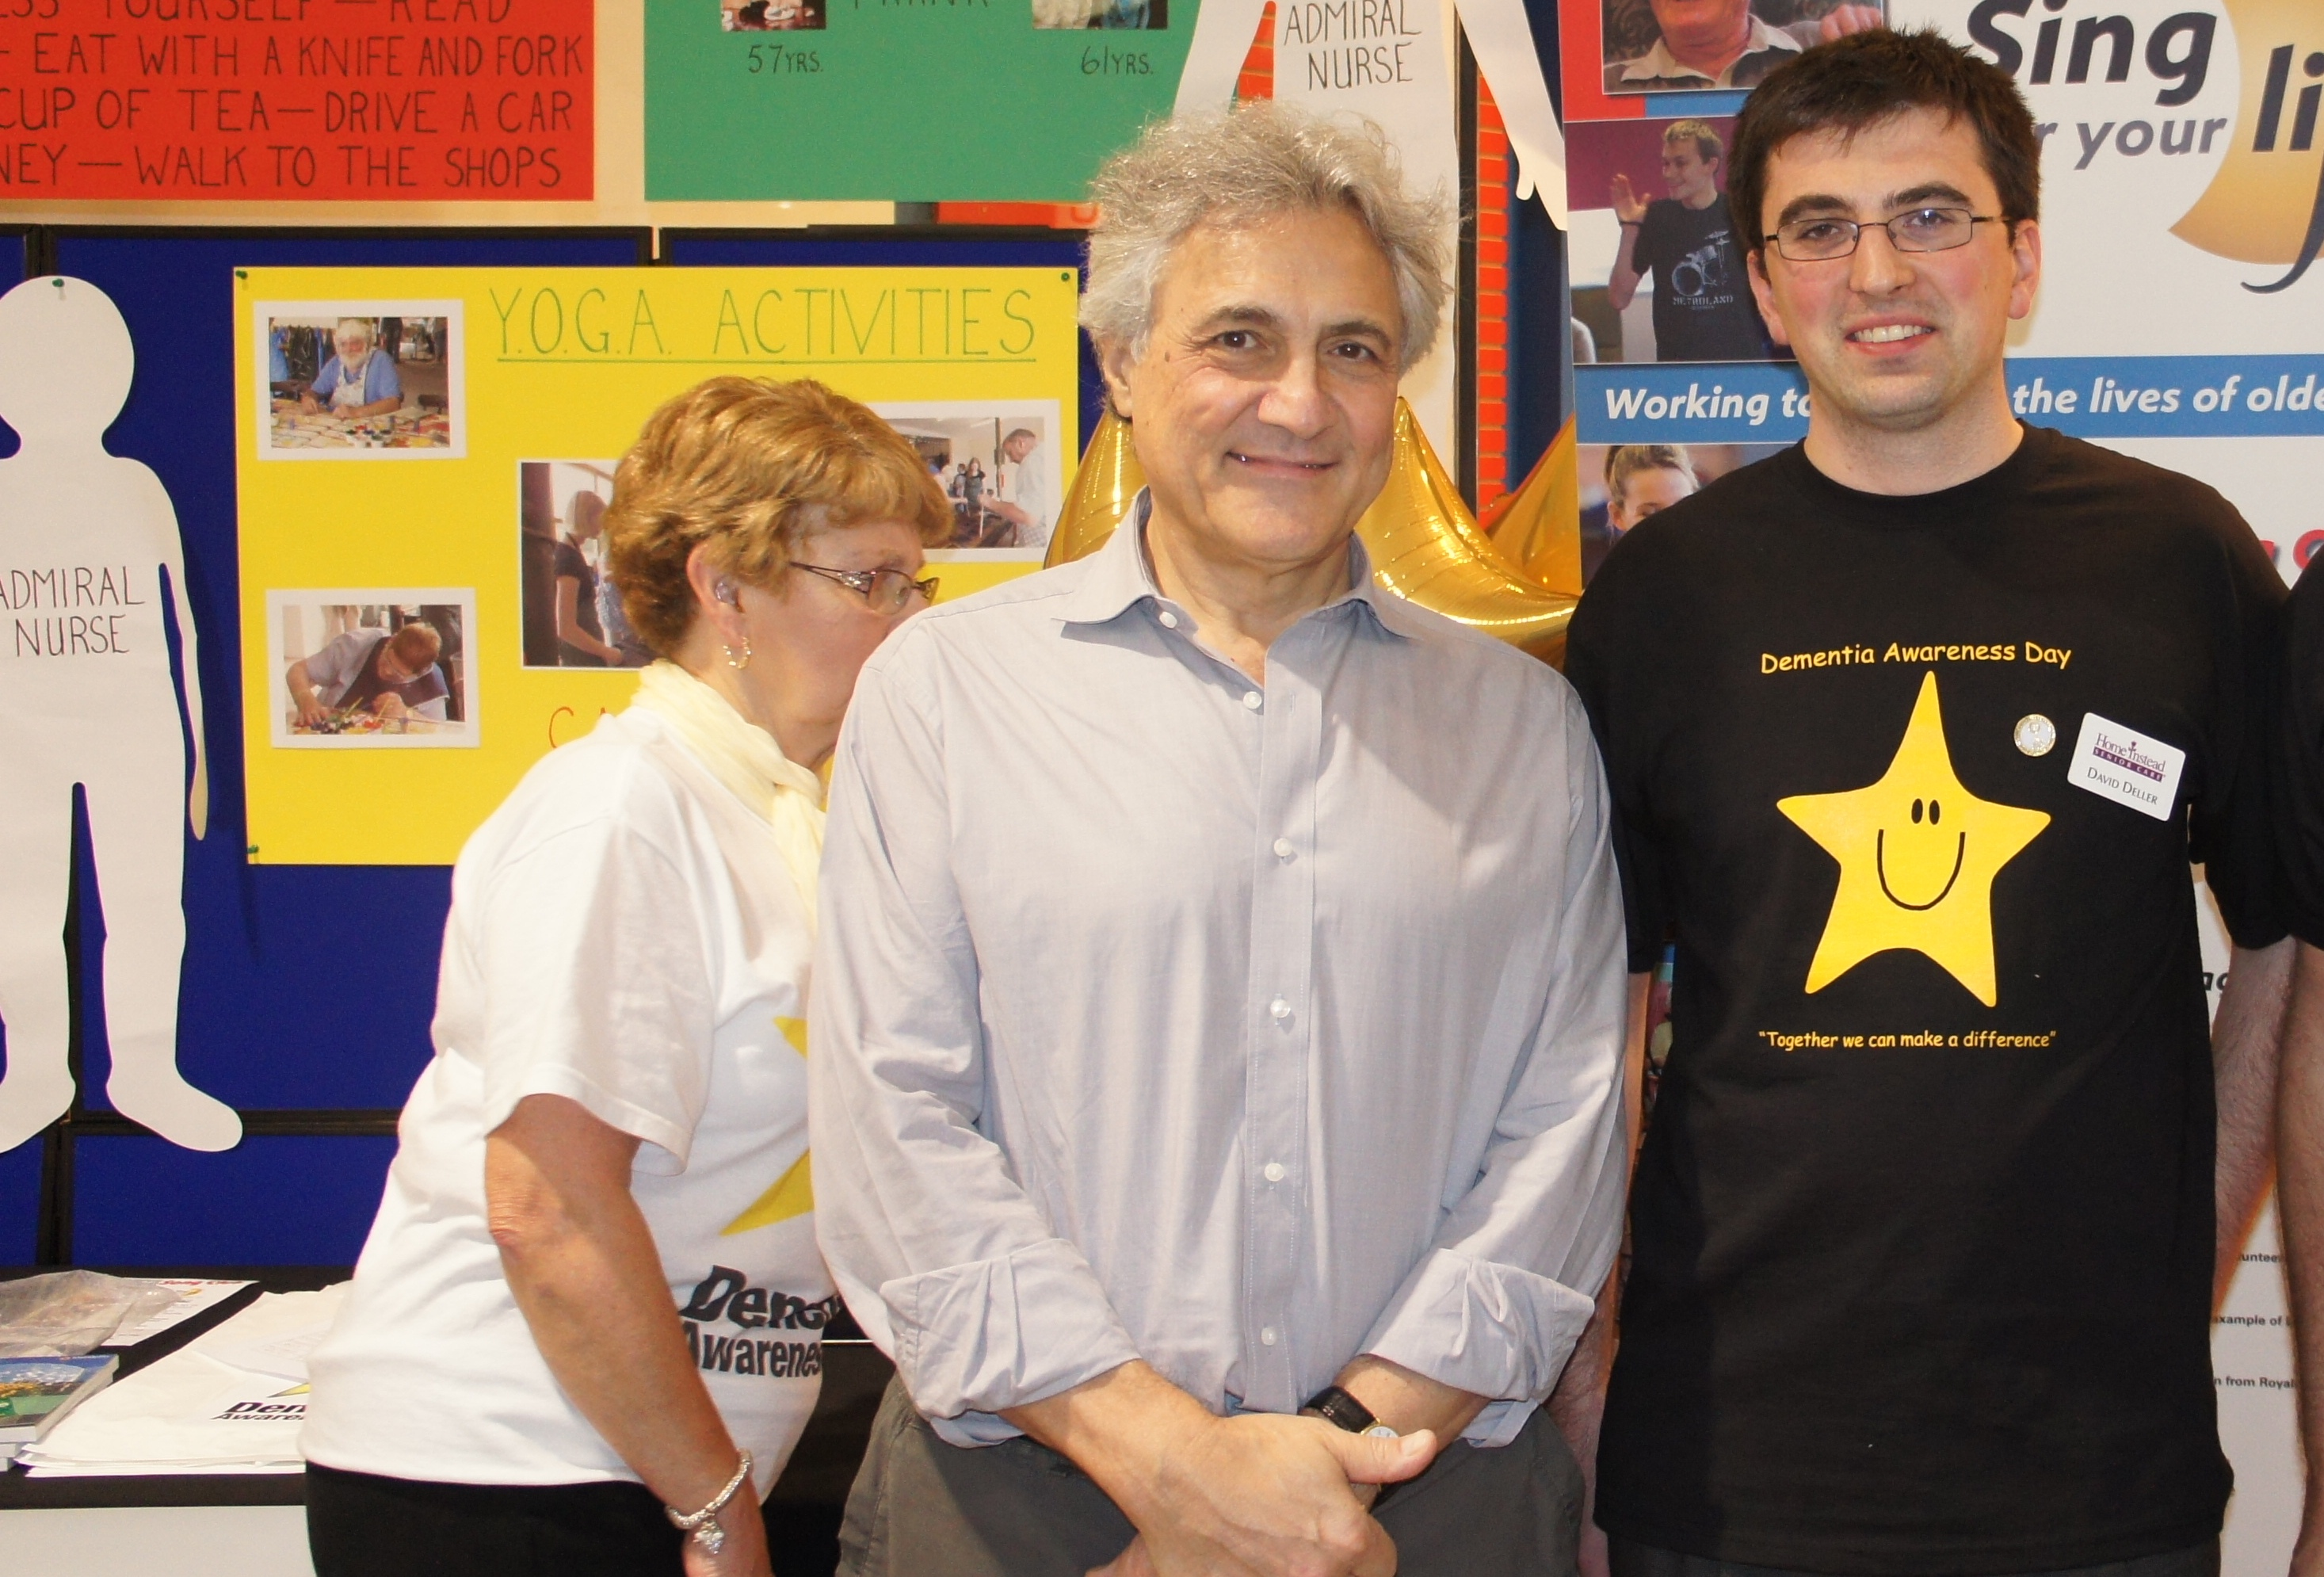 Home Instead Senior Care Bolton owner David Deller and Dementia UK president John Suchet